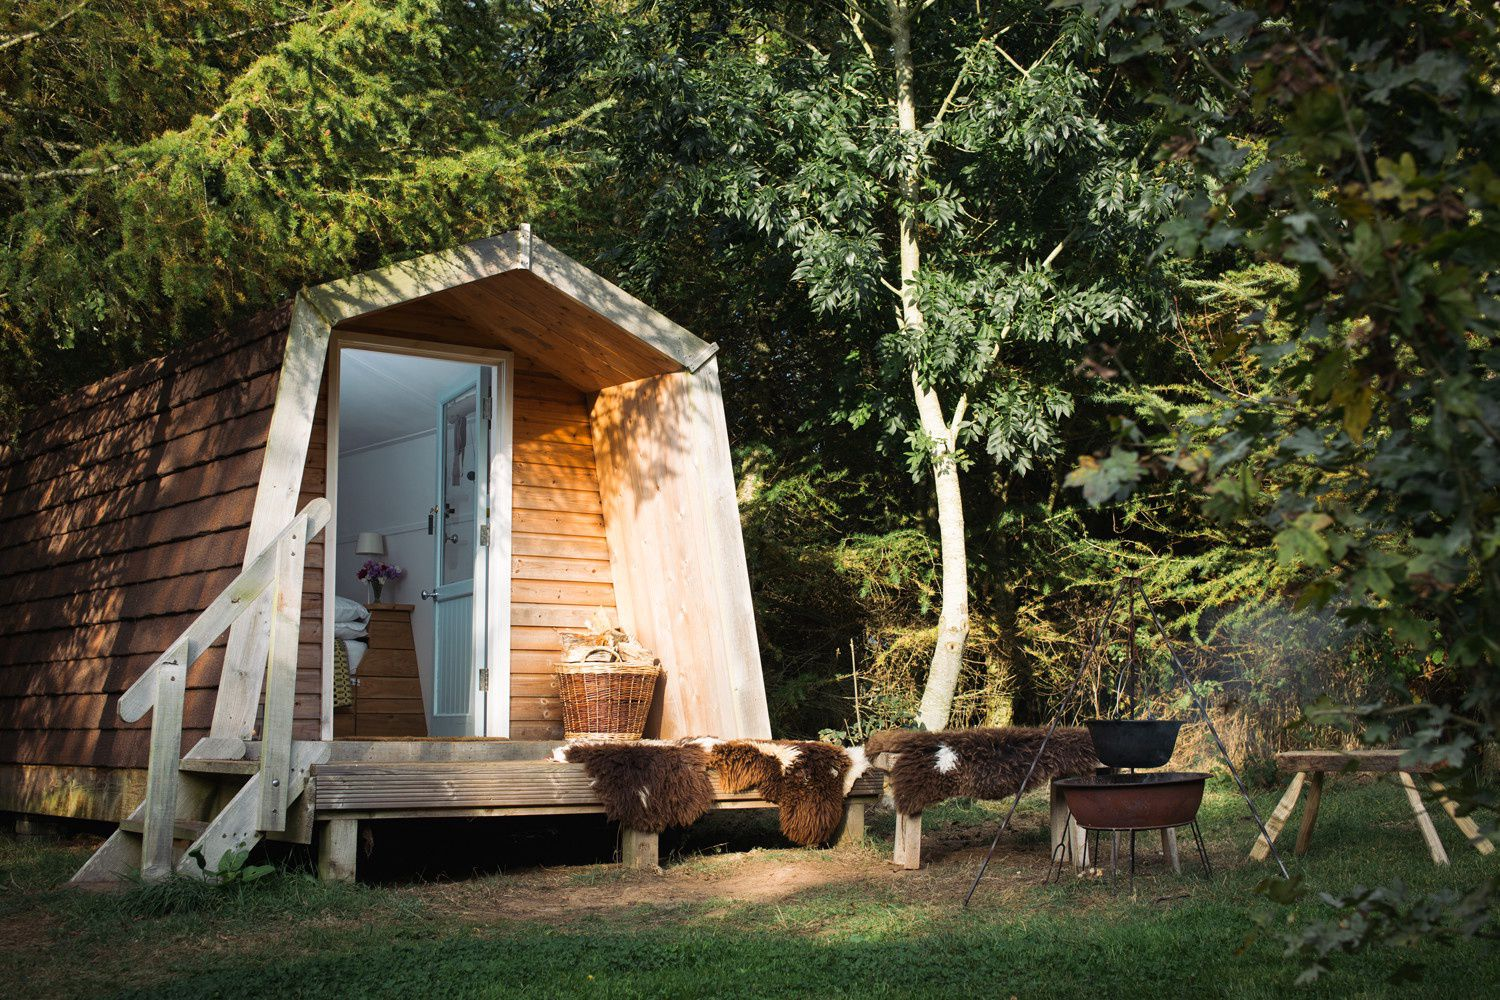 Woodland Glamping – Glamping in the forest